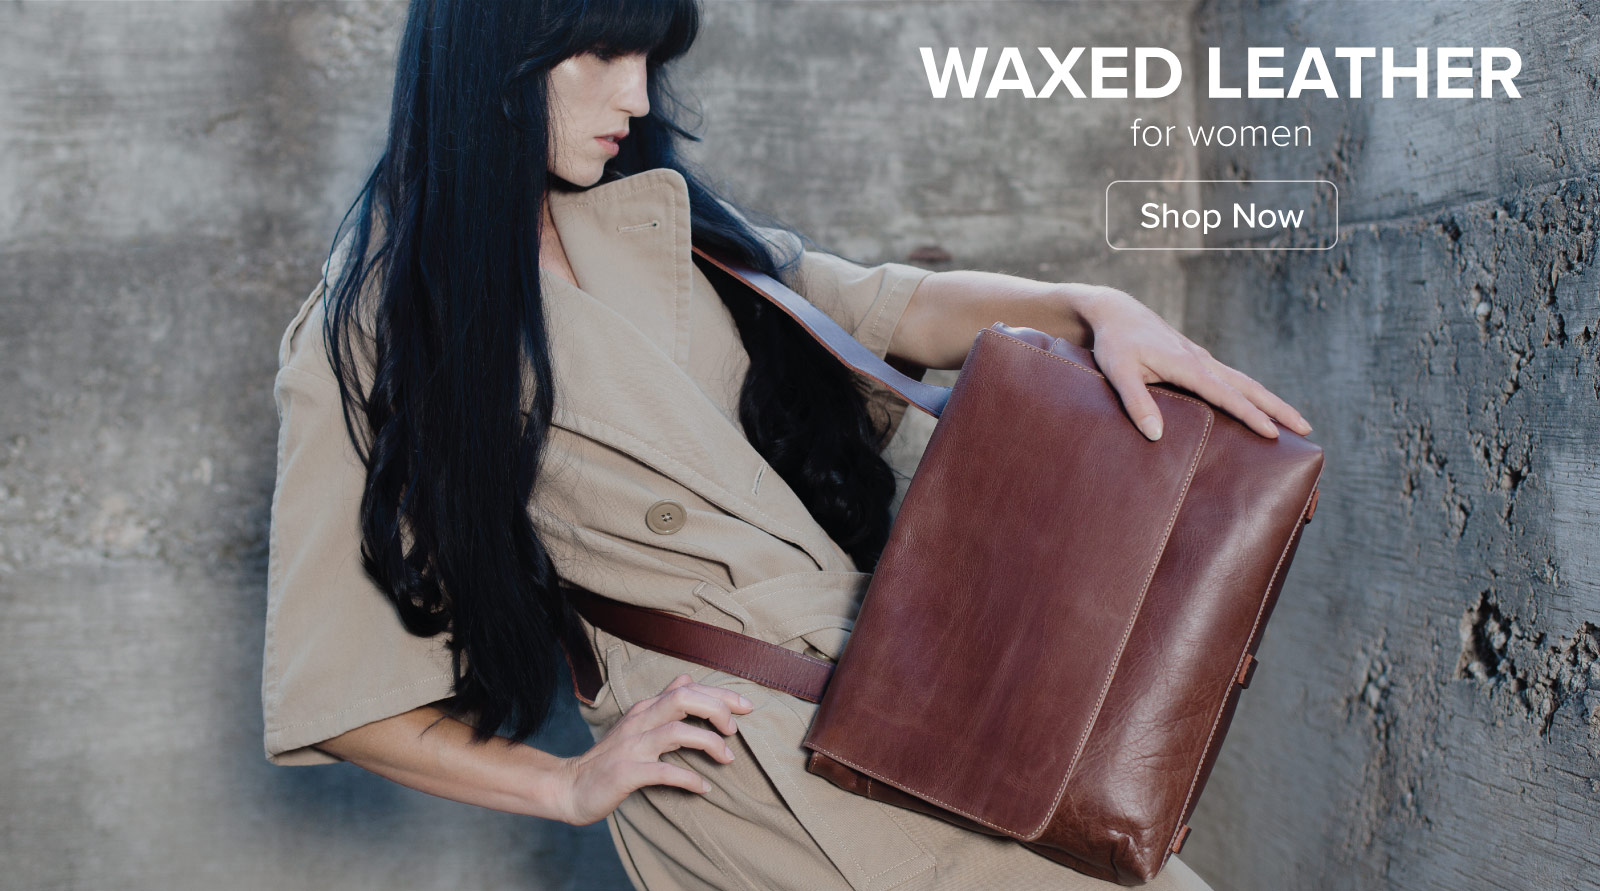 Waxed Leather Bags for Women